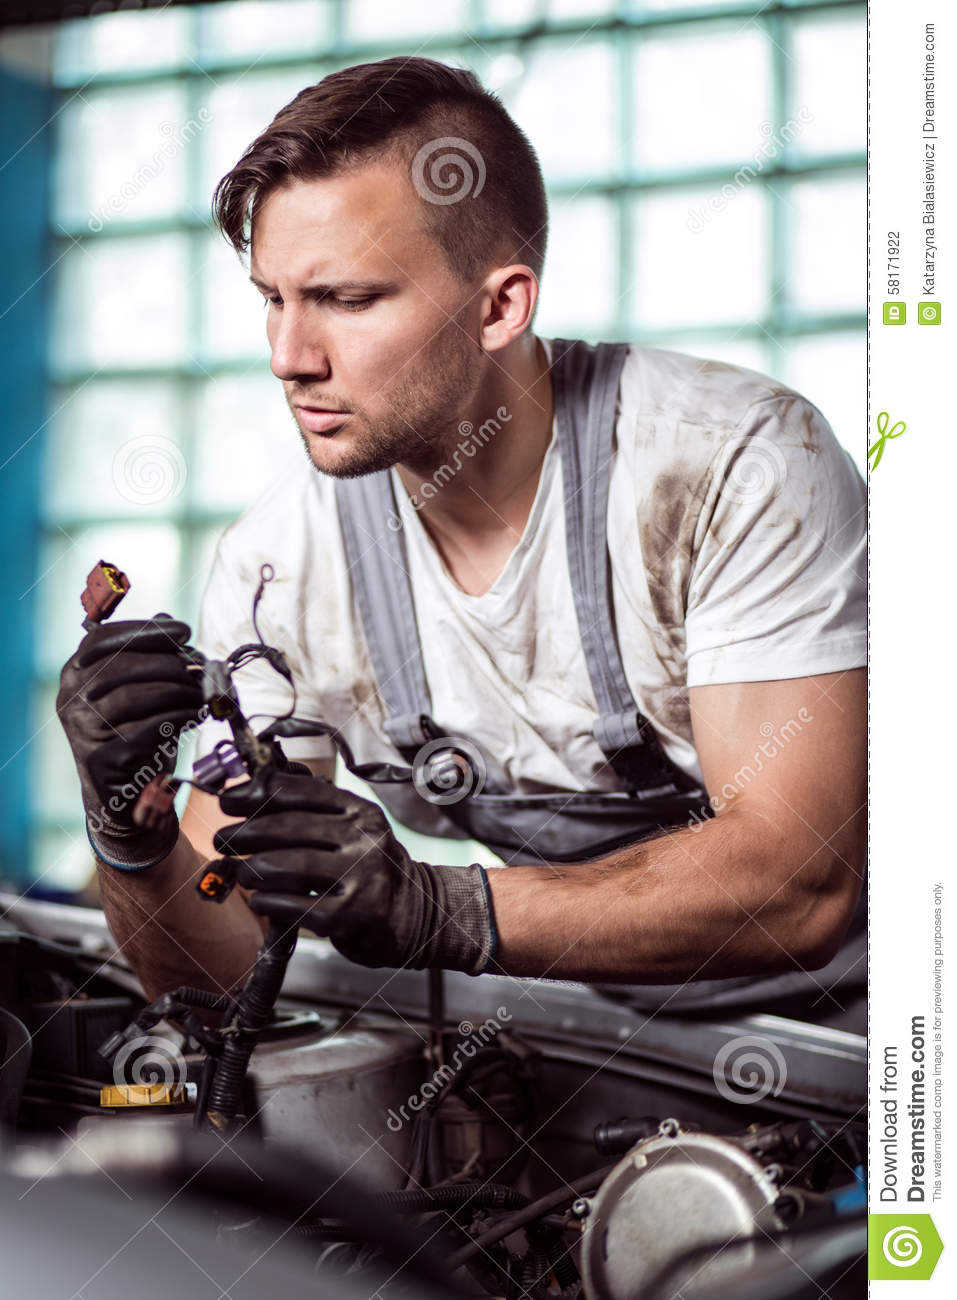 Automobile Repair Shop Worker Stock Photo - Image of ...